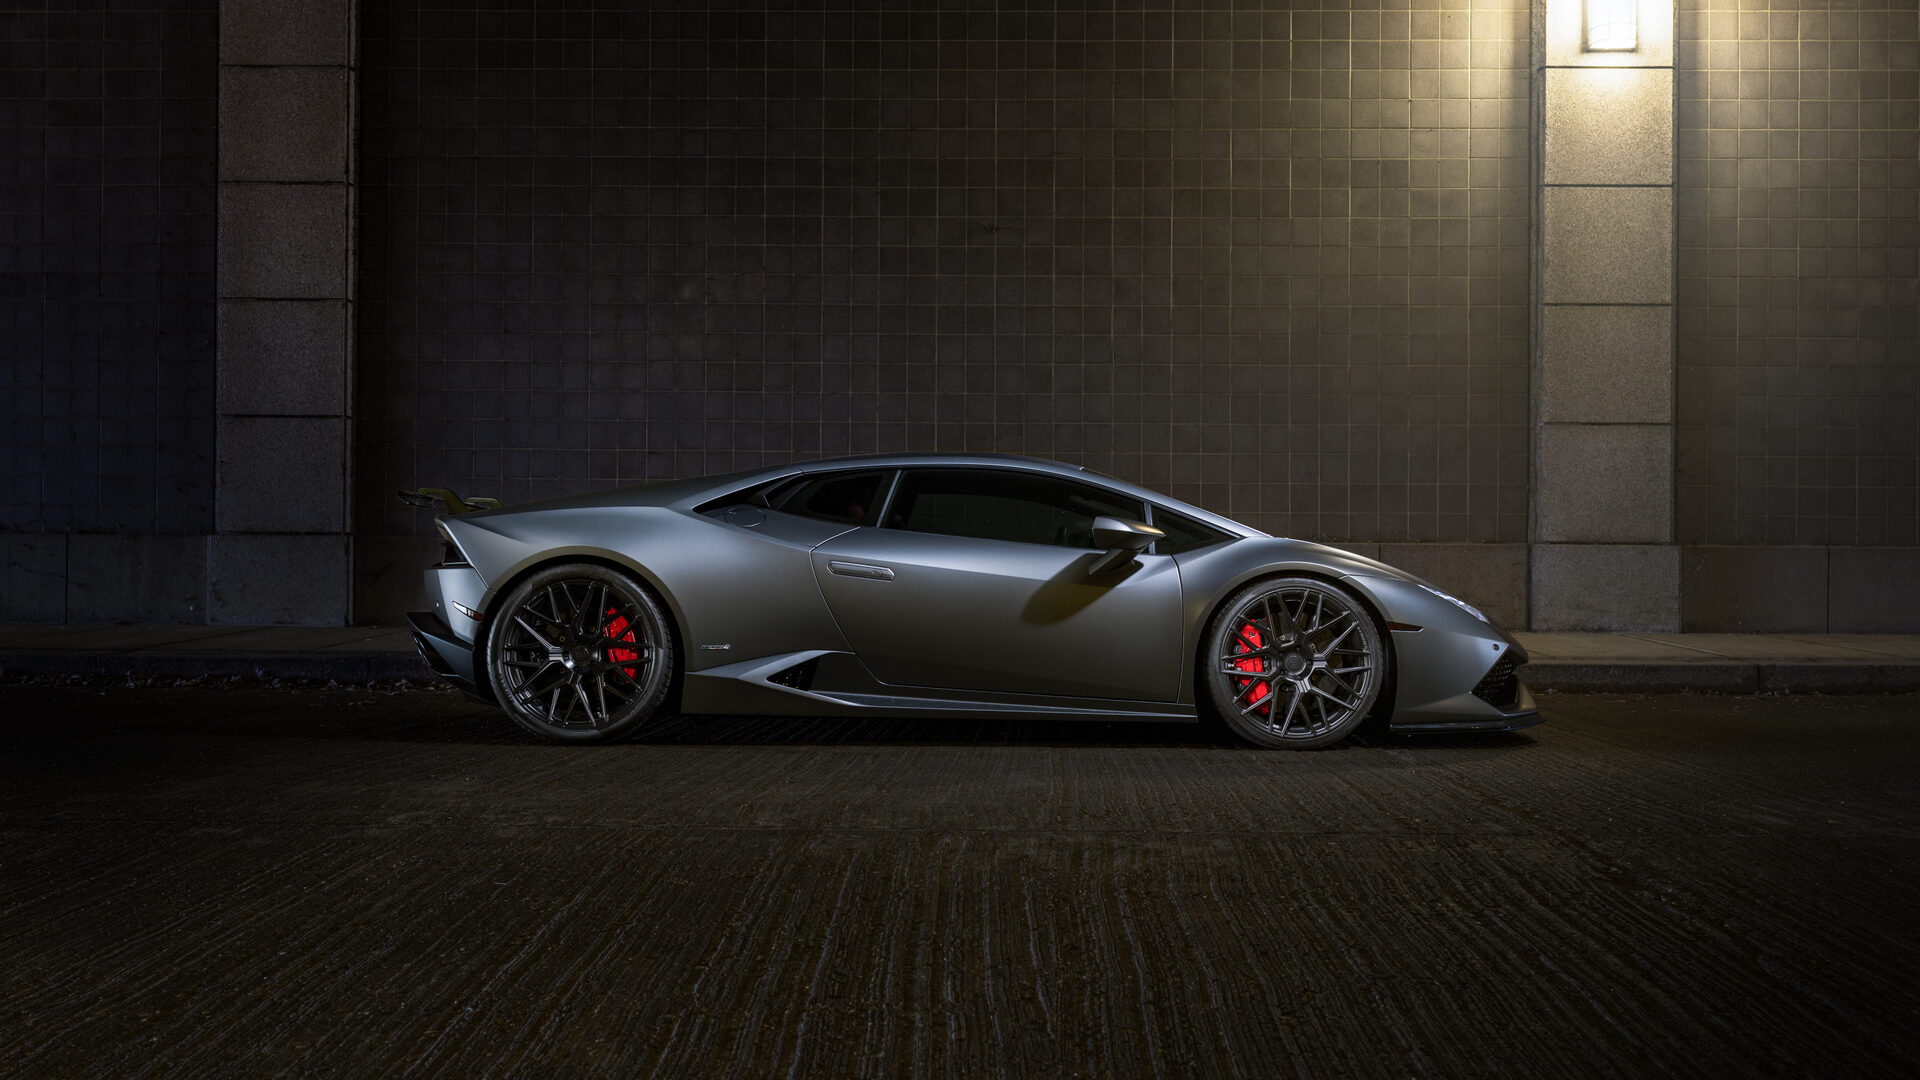 1920x1080 Lamborghini Huracan Rfx10 Matte Black Laptop Full Hd 1080p